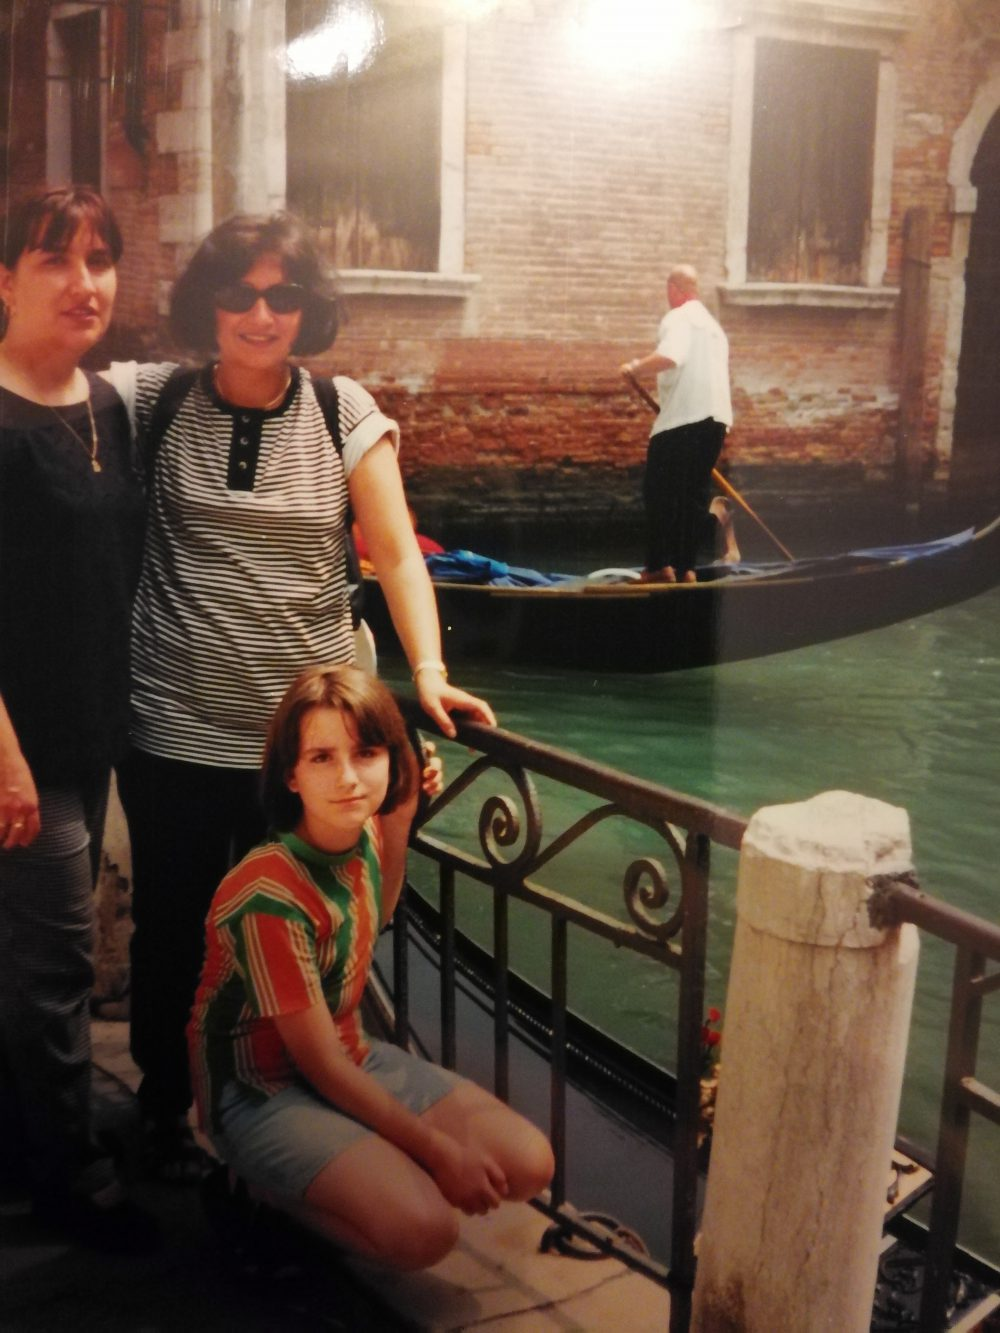 My first visit to Venice, 1997